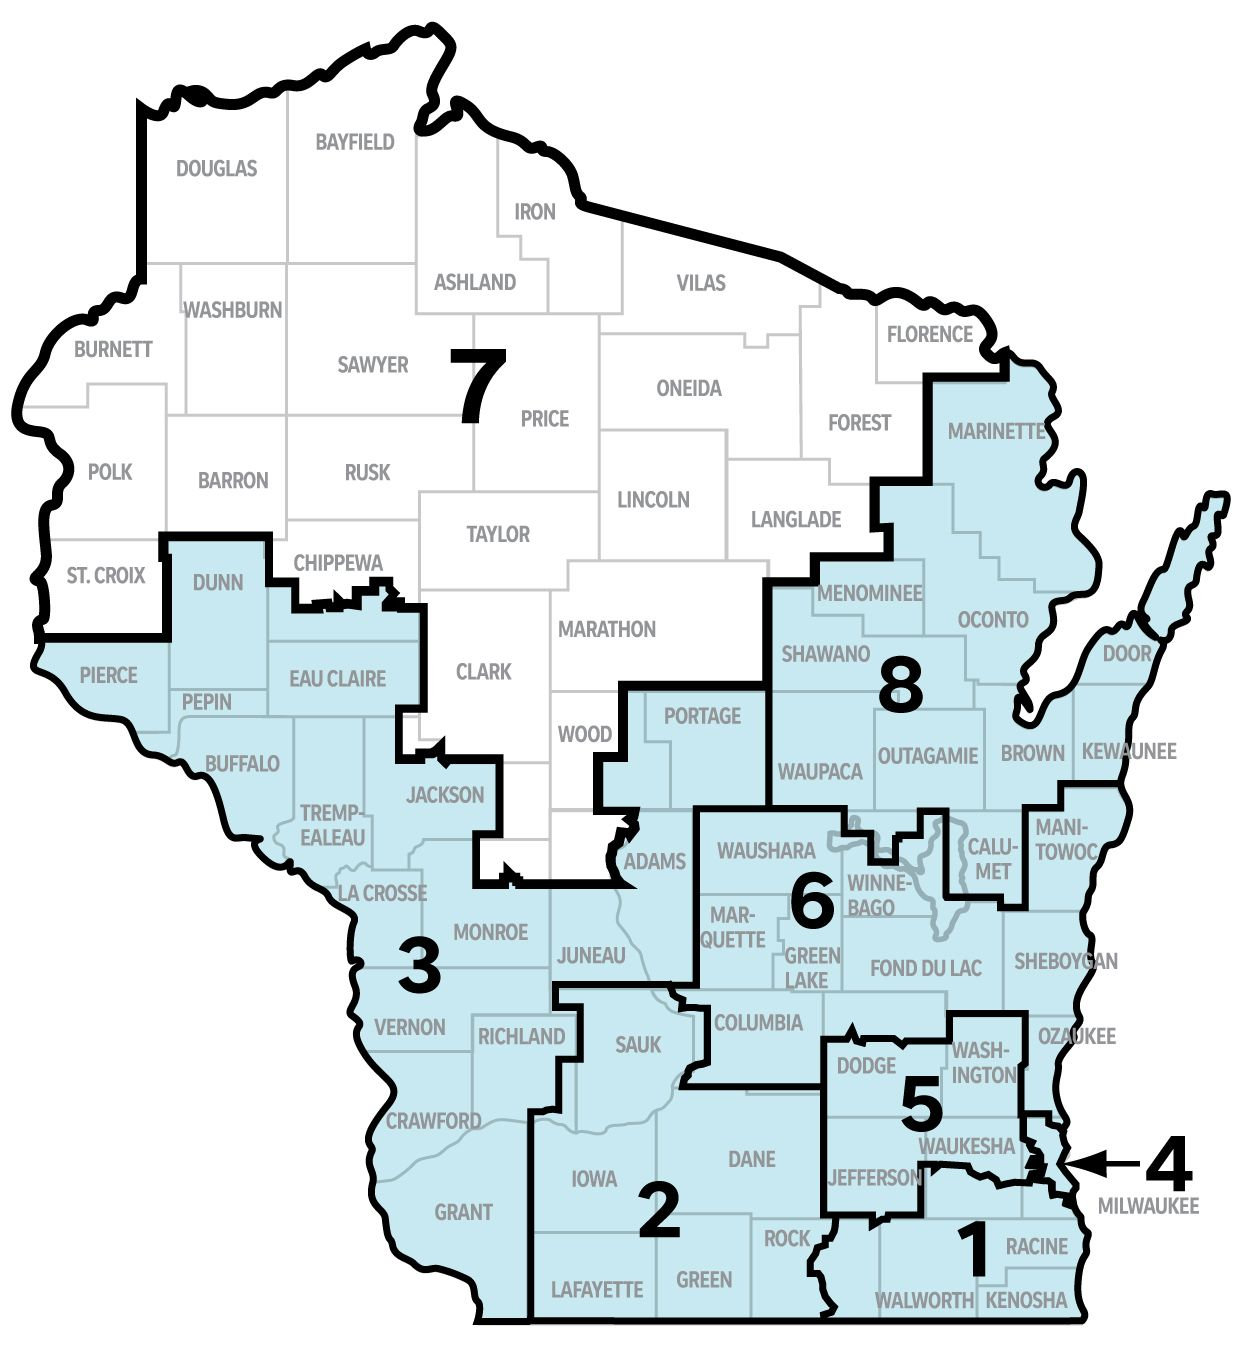 Graphic shows the counties included in Wisconsin's 7th Congressional District: Ashland, Barron, Bayfield, Burnett, Clark, Douglas, Florence, Forest, Iron, Langlade, Lincoln, Marathon, Oneida, Polk, Price, Rusk, Sawyer, St. Croix, Taylor, Vilas, and Washburn counties. Portions of Chippewa, Jackson, Juneau, Monroe, and Wood counties are also in the district.